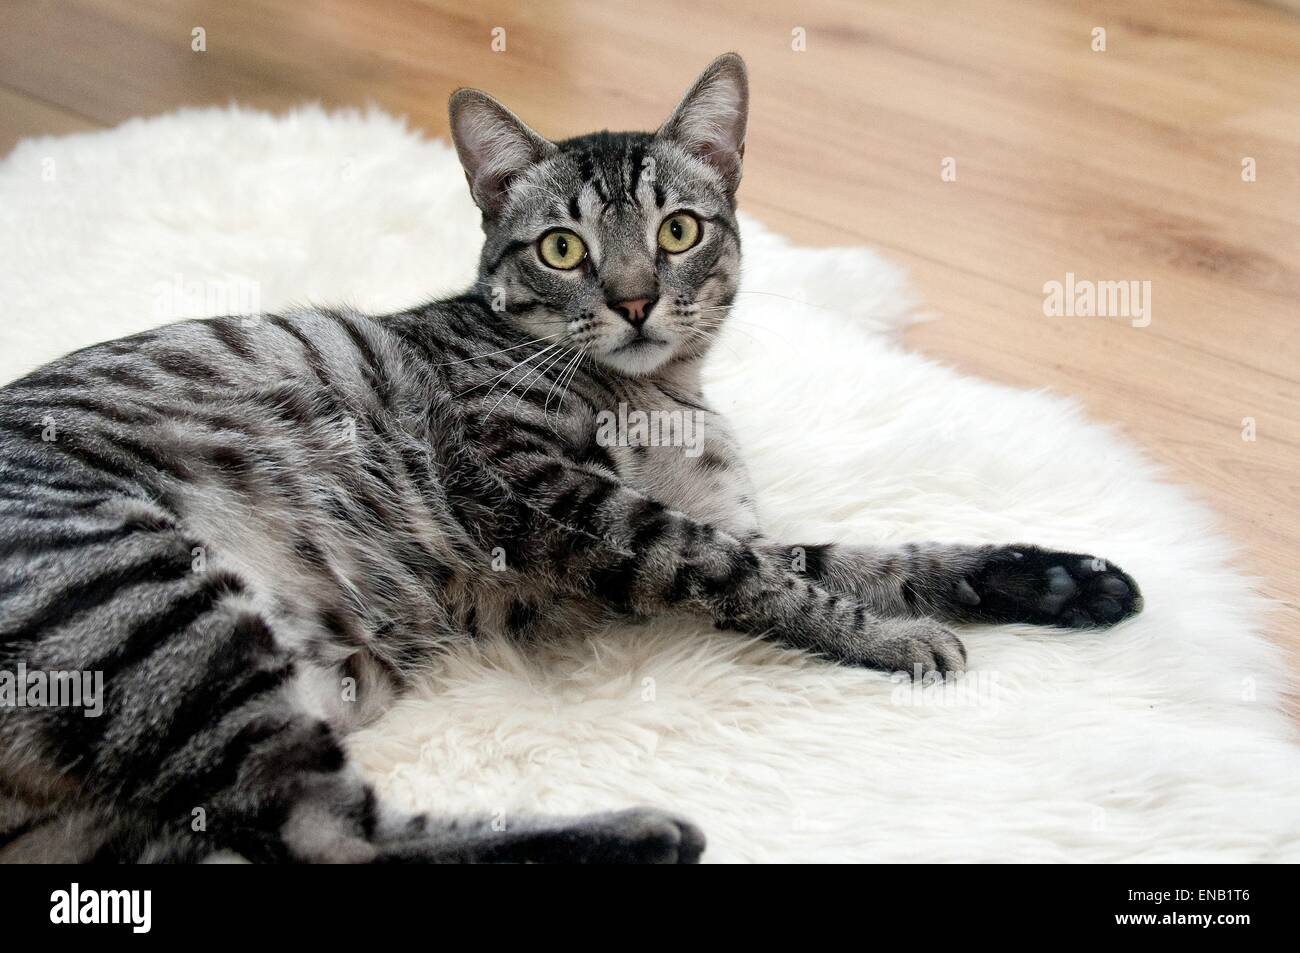 Tabby cat laying on a white rug indoors - Stock Image